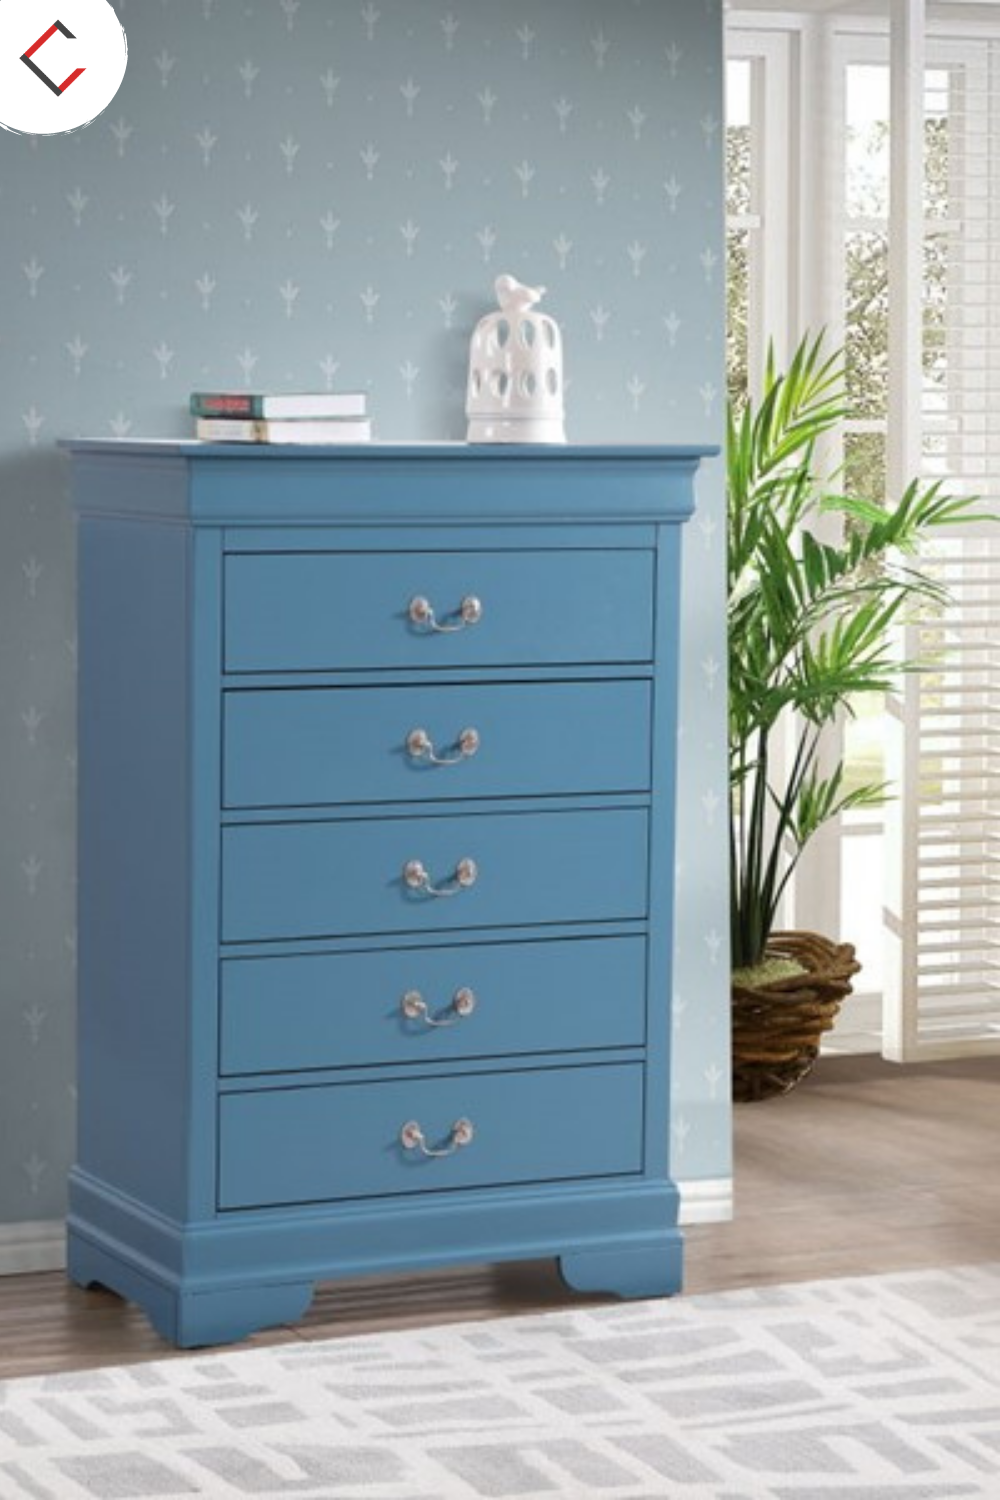 Assembled Bedroom Chest Is Finished In Real Wood Veneers Over Manufactured And Solid Wood. Drawers Move On Center Supported Metal Guides And Are Dovetailed Front And Back. Corner Blocks Are Utilized To Support Drawer Bottoms. Choose From A Variety Of Colors. #salvagedinspirations #paintedfurniture #diyfurniture #paintedsewingcabinet #sewingtable #furnituremakeover #dixiebellepaint #woodubend #singersewingmachine